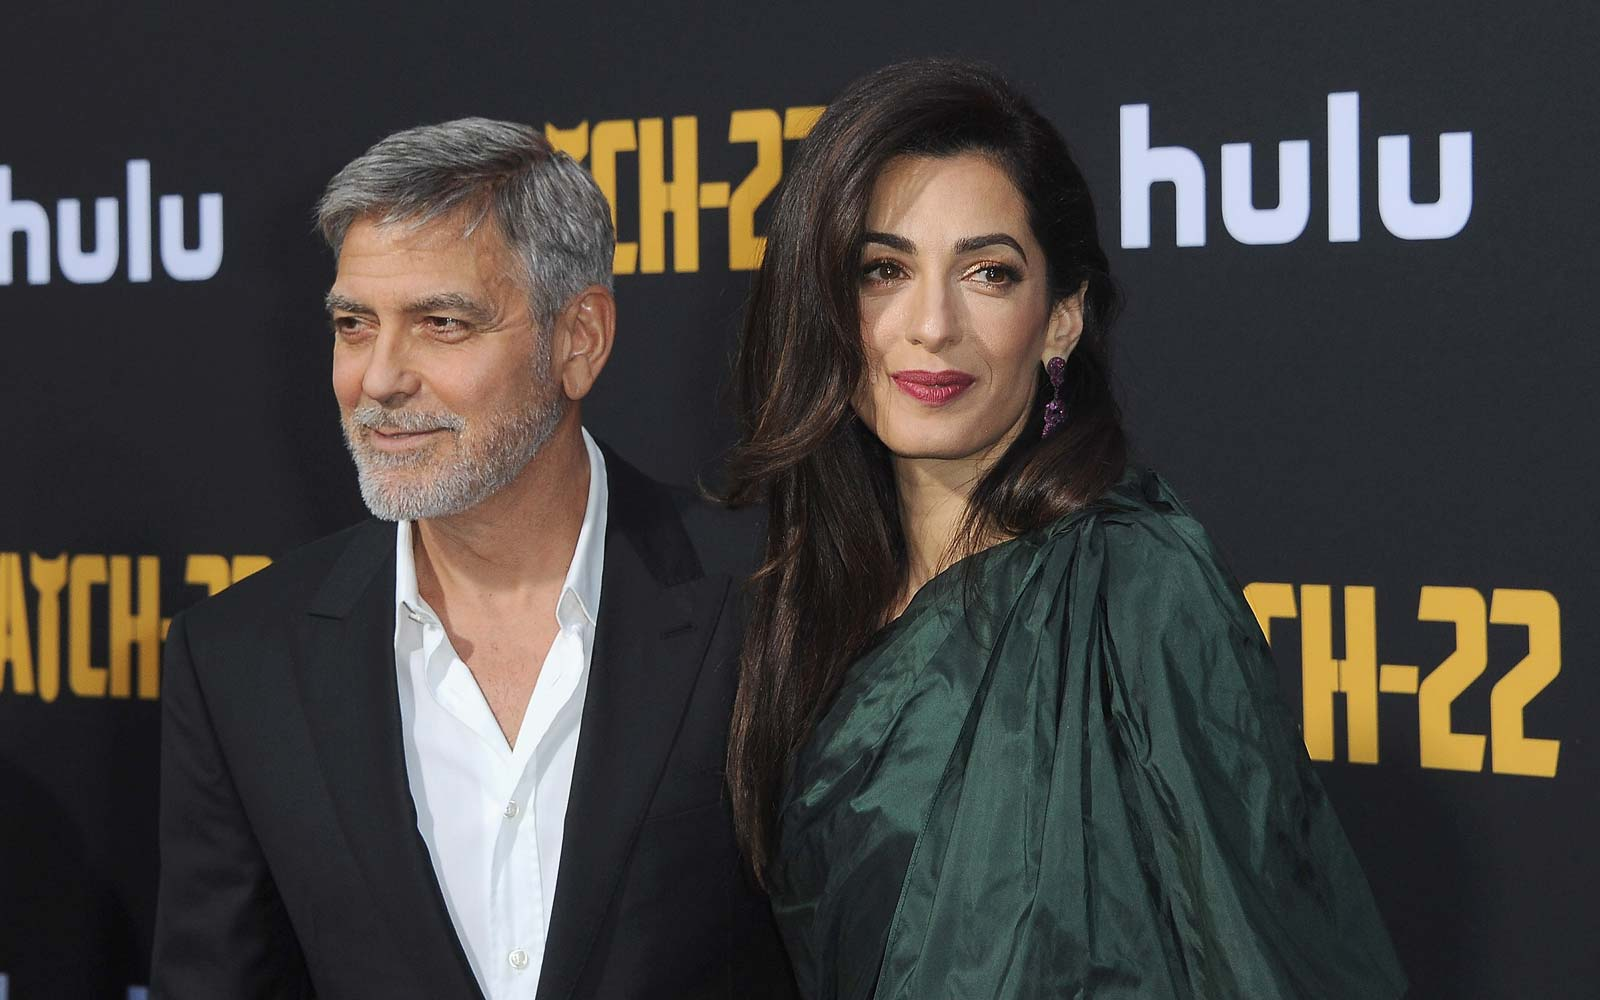 George Clooney Says Twins Sometimes Pronounce Words Like British Mom Amal: 'I've Got to Fix That'